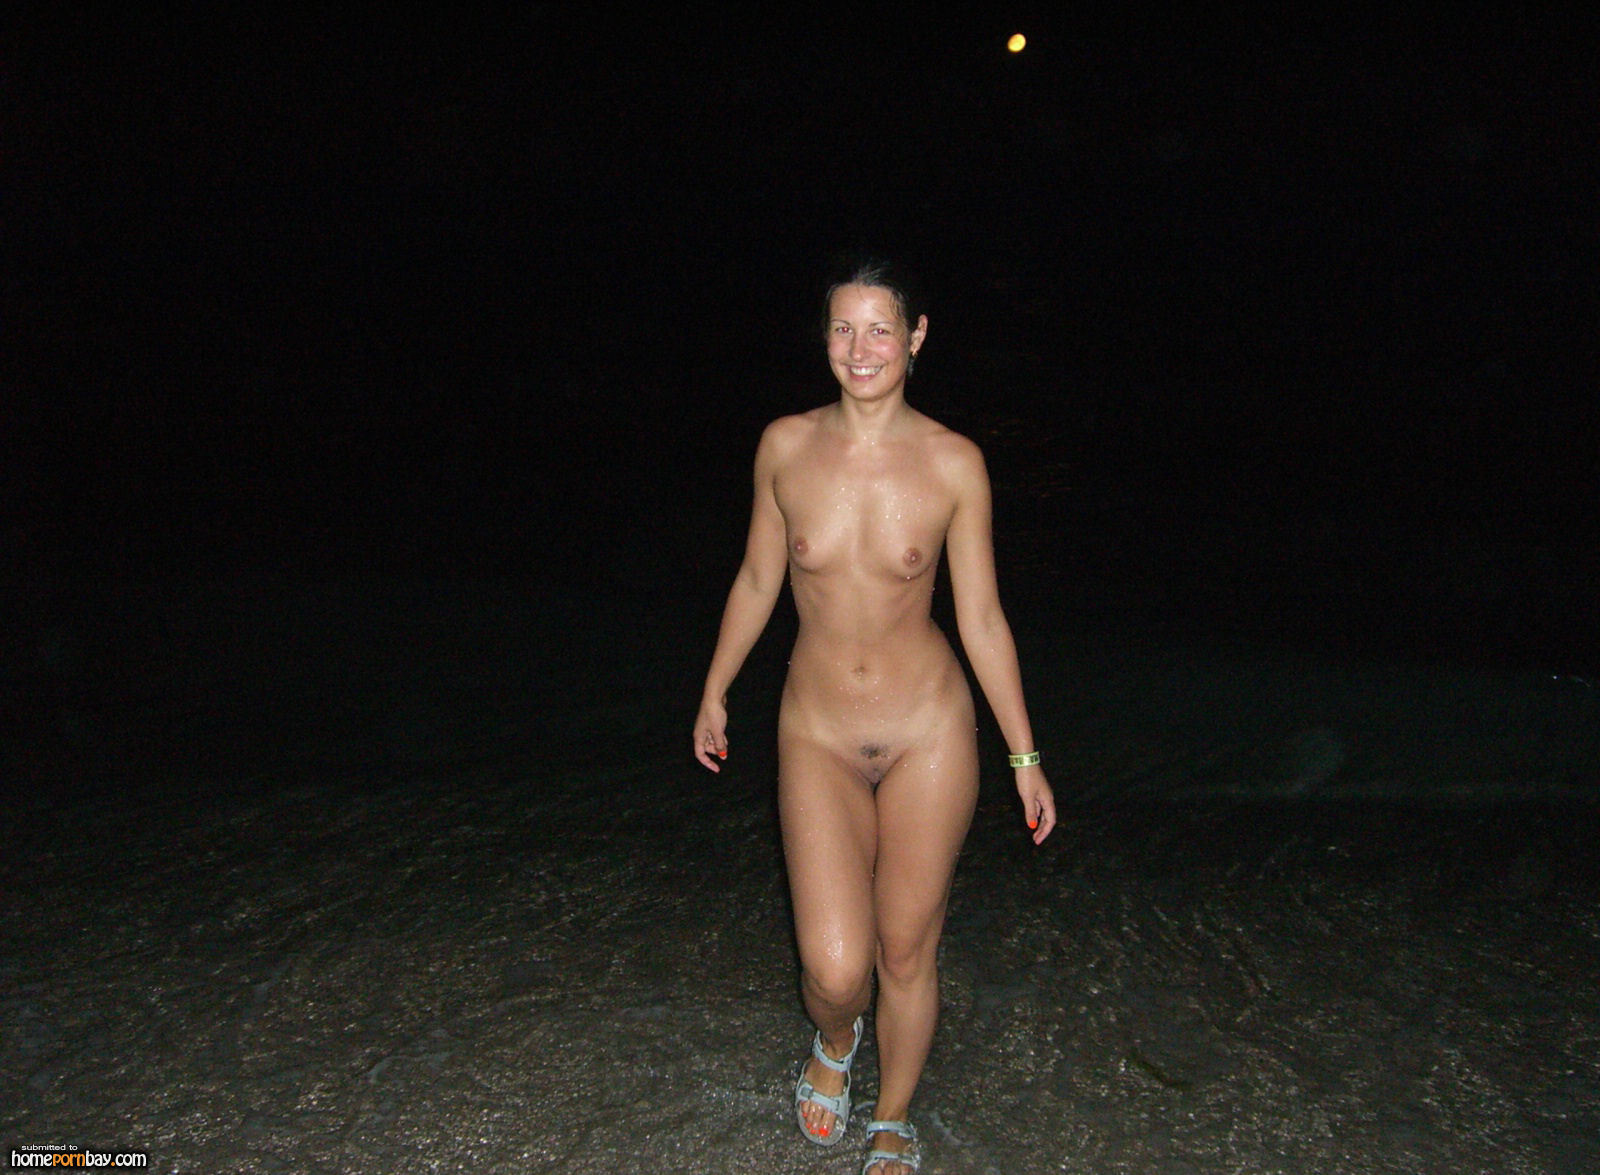 from Justin skinny dipping nude women